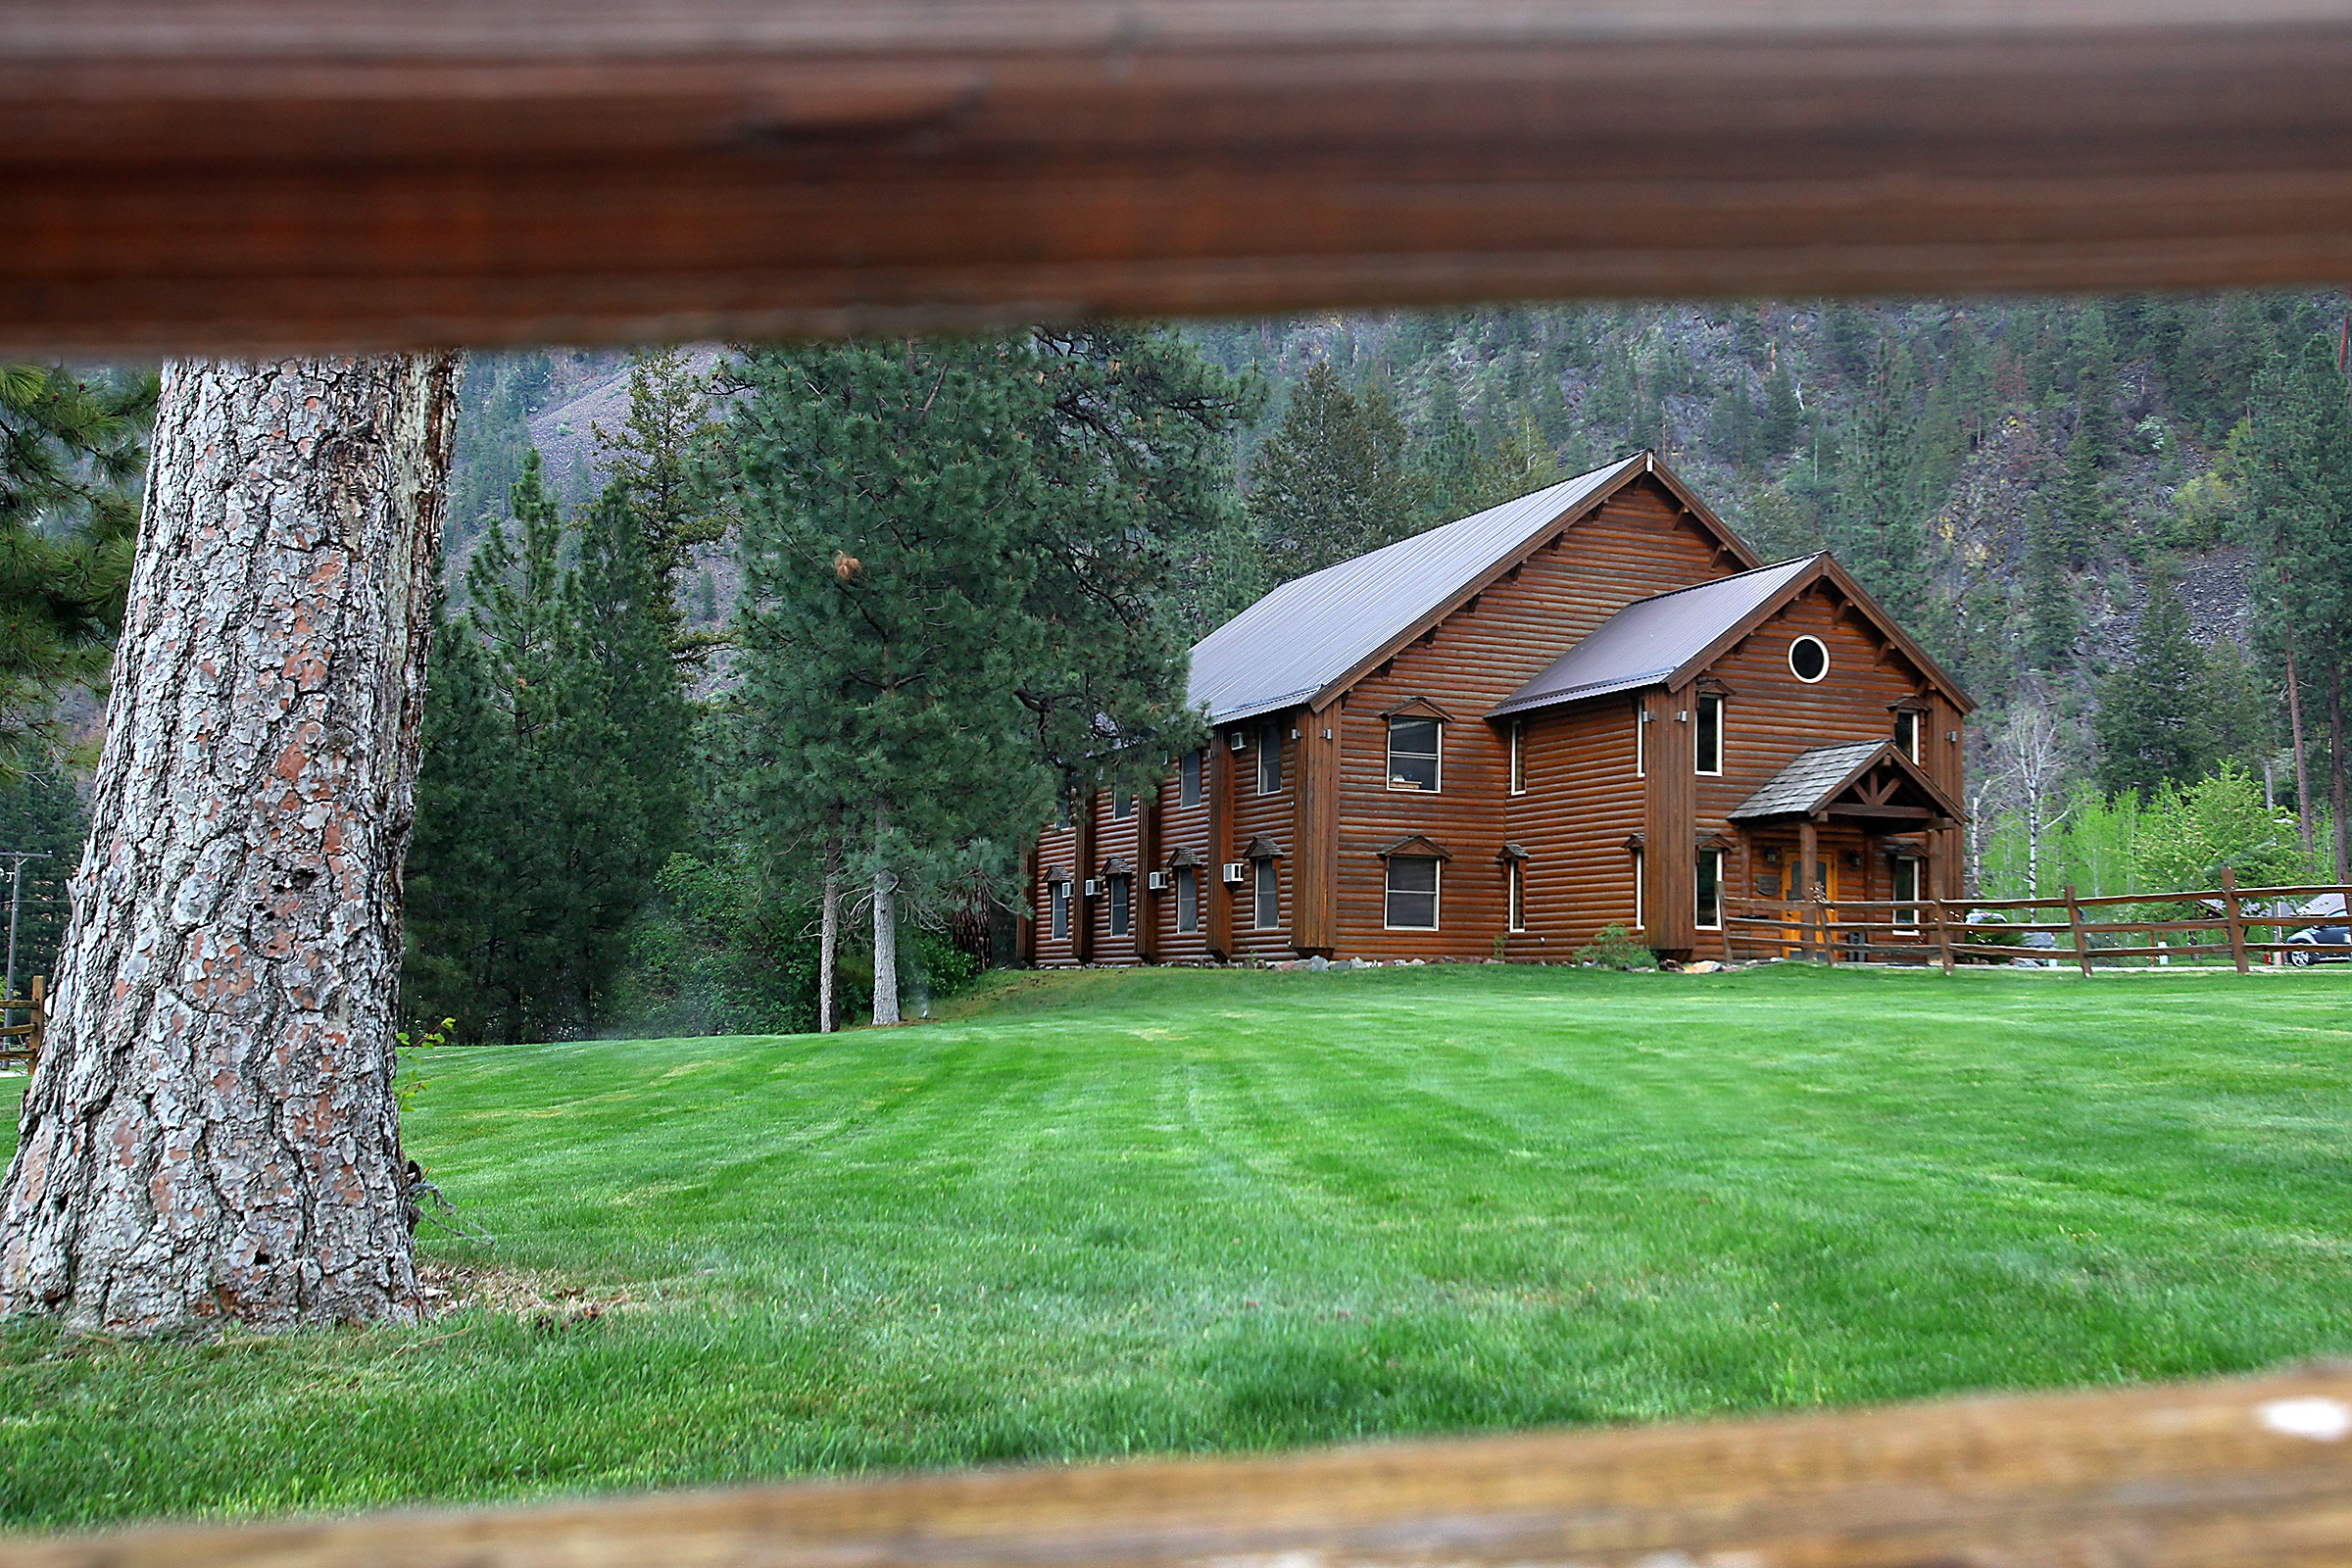 Glacier Lodge - This adults-only lodge offers a king-sized bed perfect for couples looking for an affordable getaway.